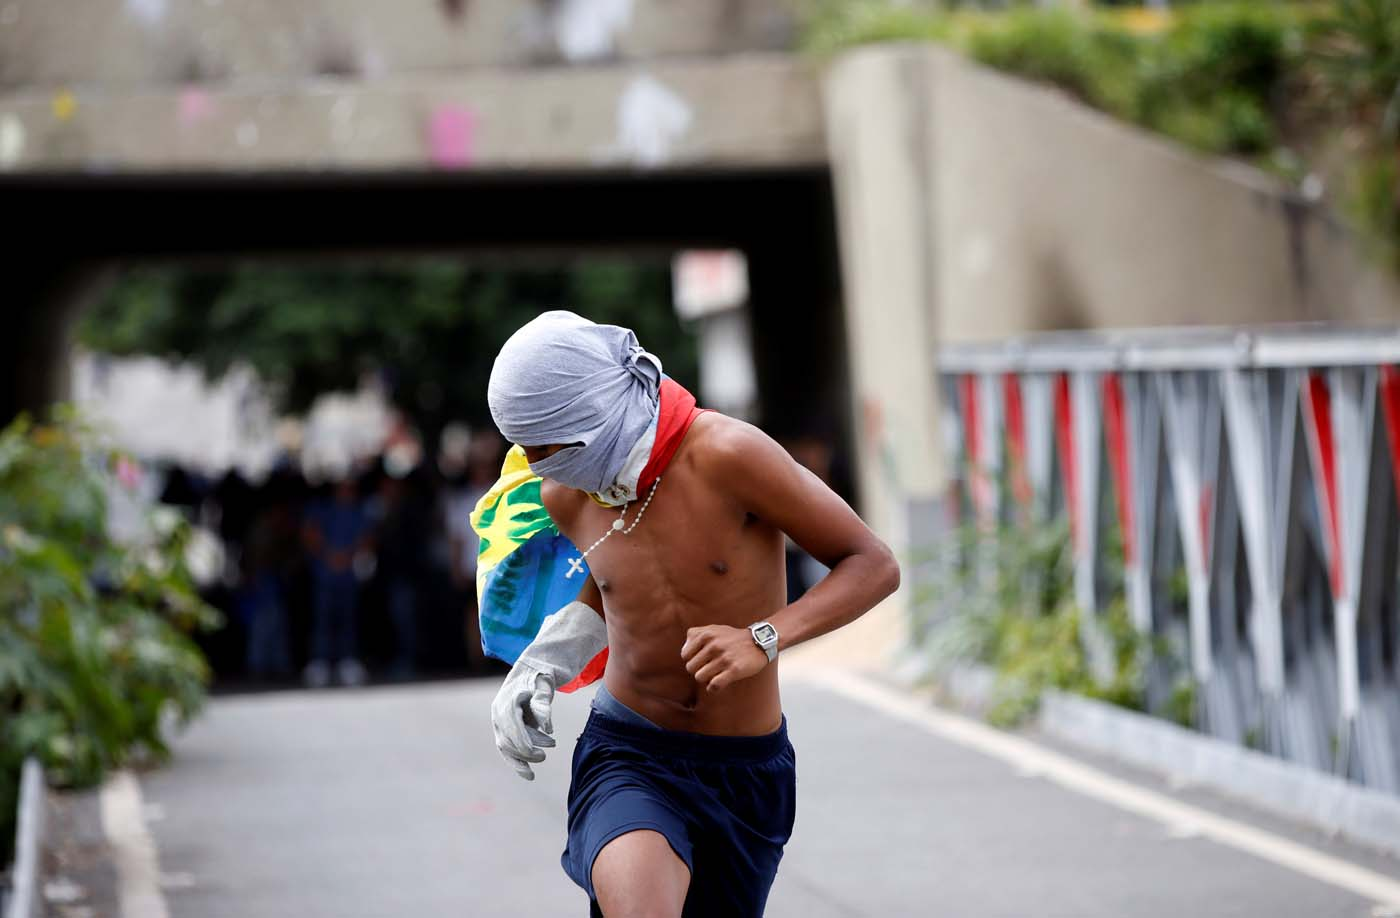 A masked demonstrator runs during clashes with security forces at a rally against Venezuelan President Nicolas Maduro's government in Caracas, Venezuela, July 6, 2017. REUTERS/Andres Martinez Casares